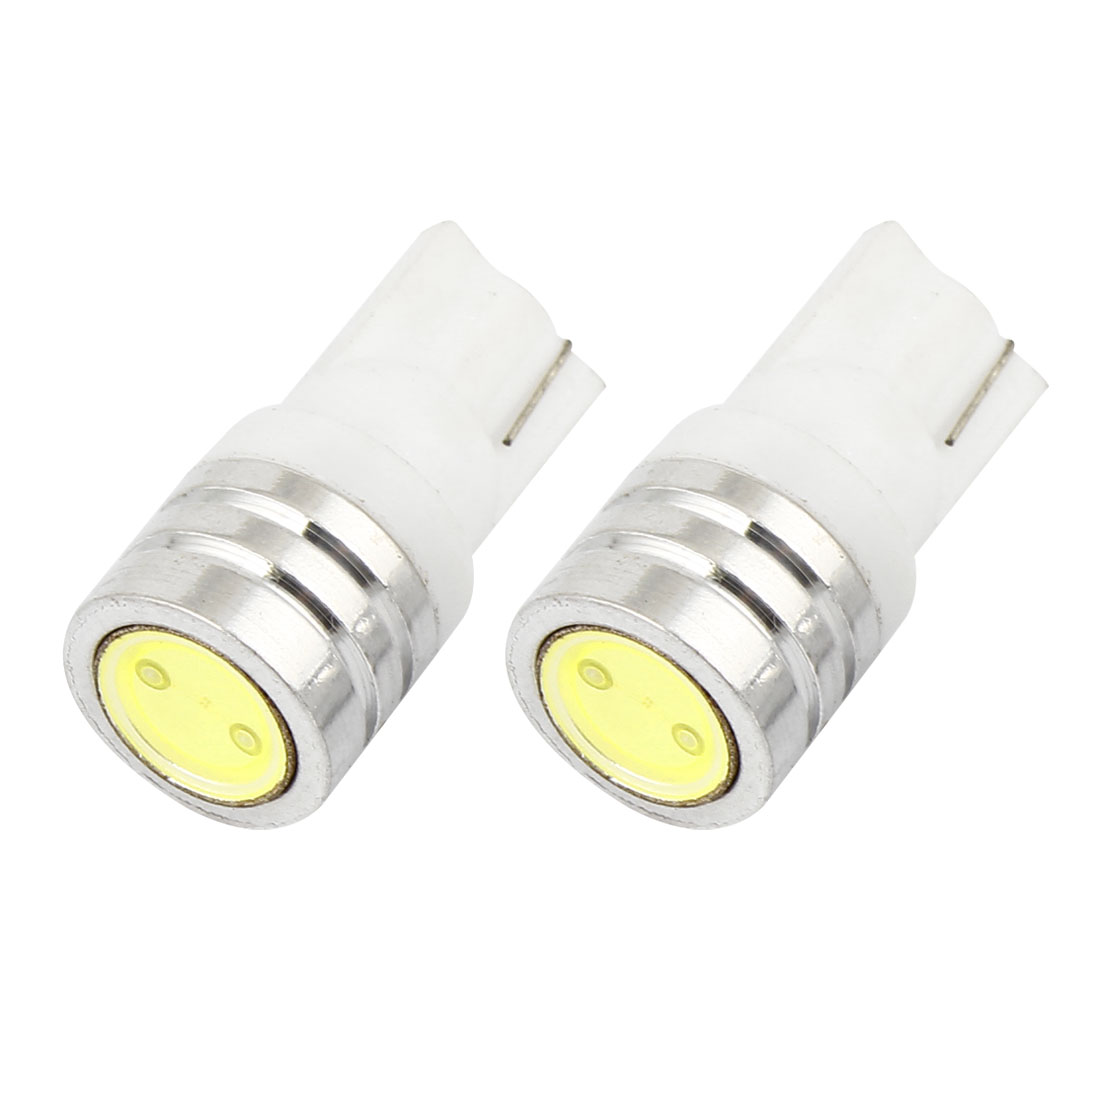 2 Pcs T10 168 Warm White LED Bulbs Interior Gauge Lamp Light 12V 1W Internal for Automobile